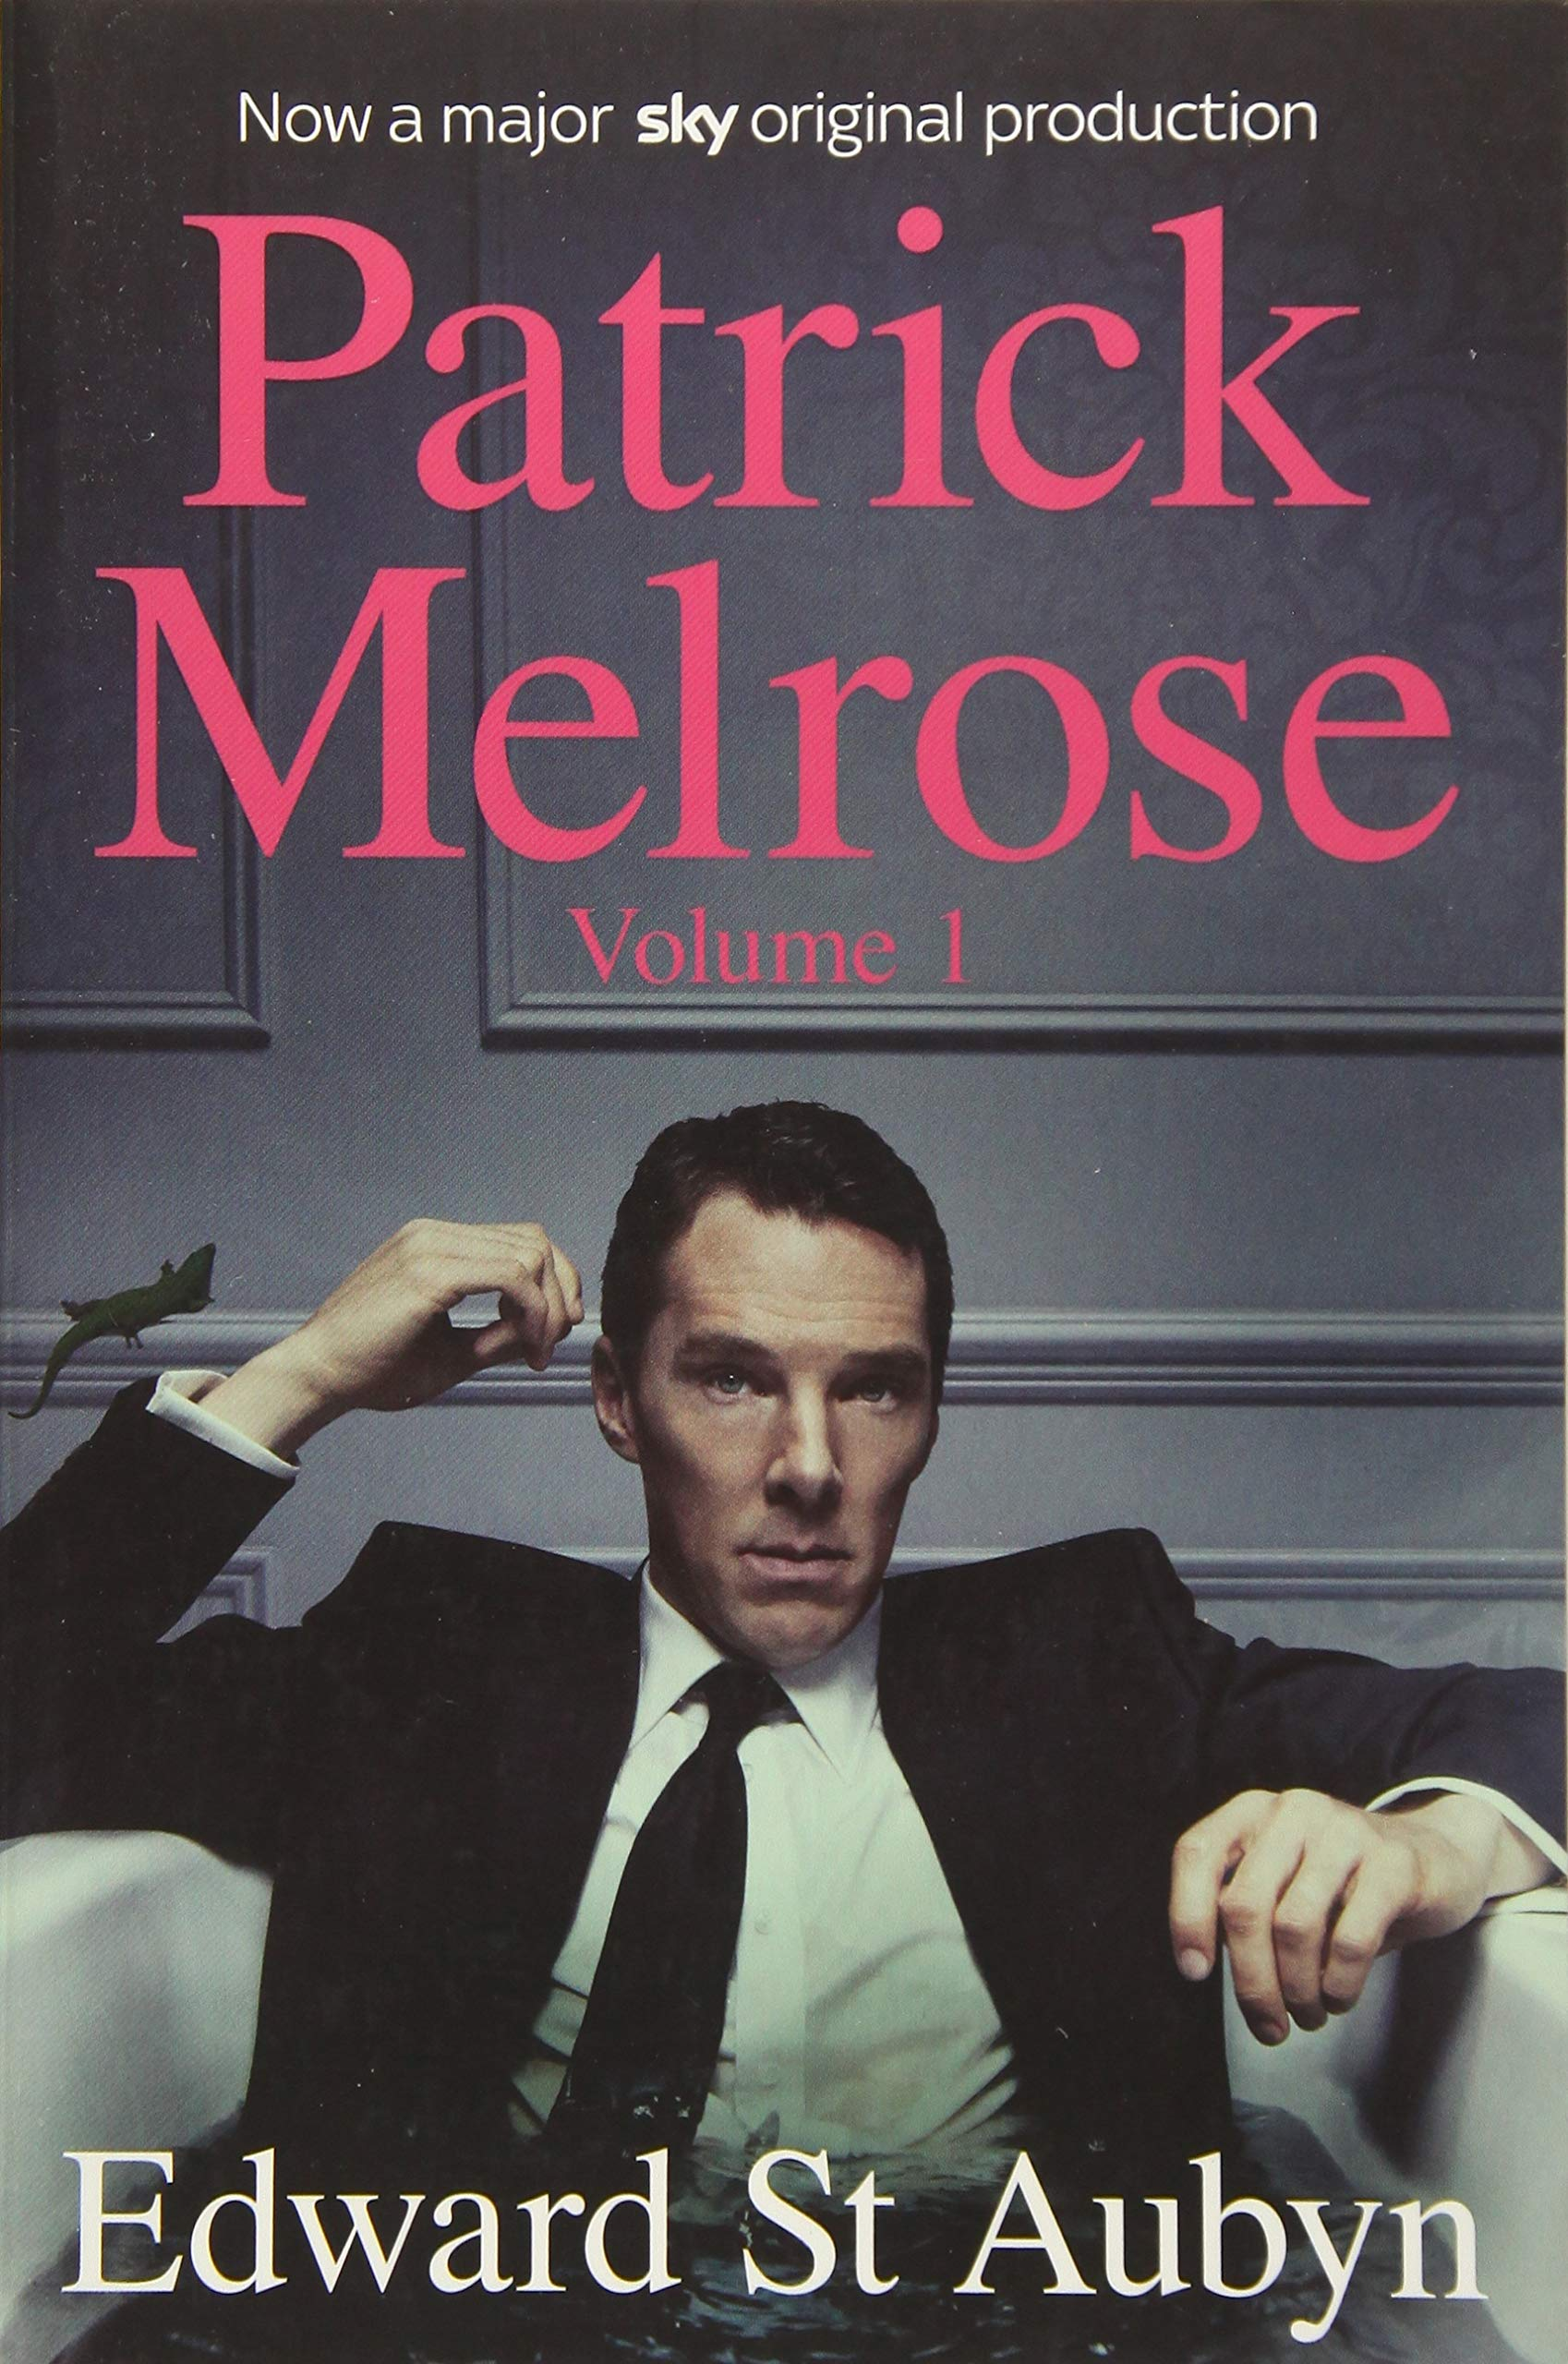 Patrick Melrose Volume 1 Never Mind Bad News And Some Hope